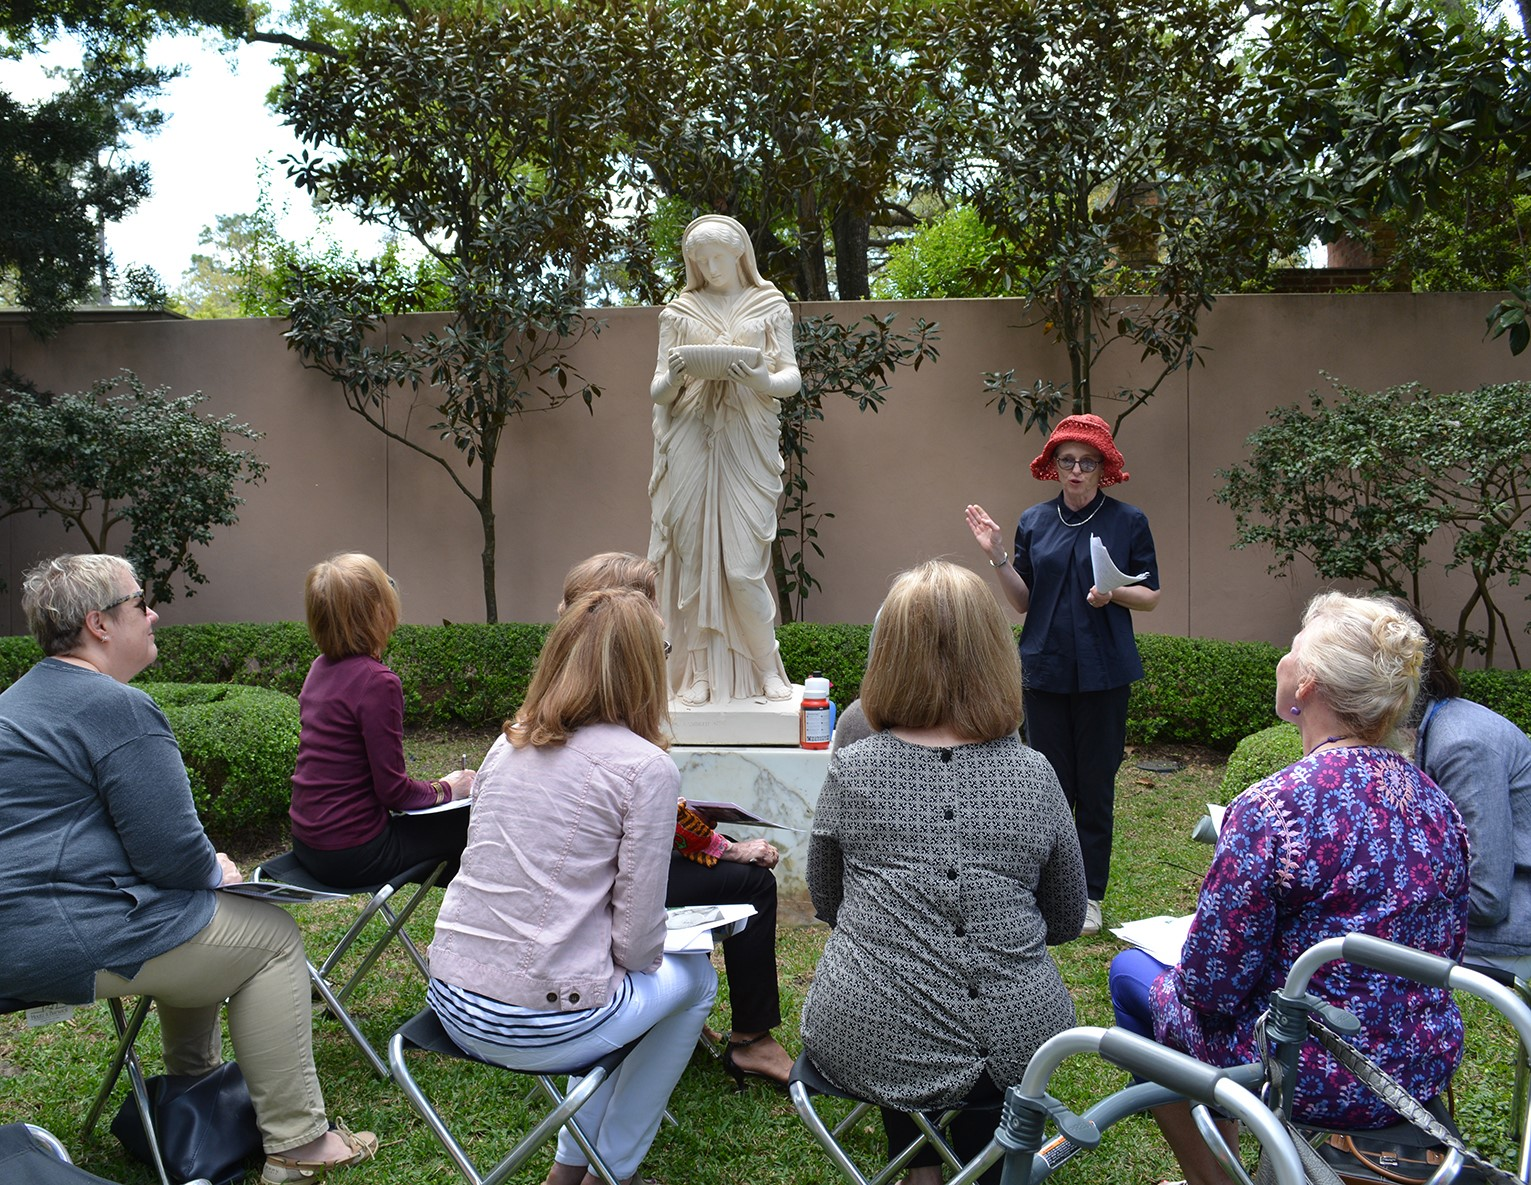 Rienzi gallery talk in the gardens - Jane Gillies with Lady Gandes sculpture